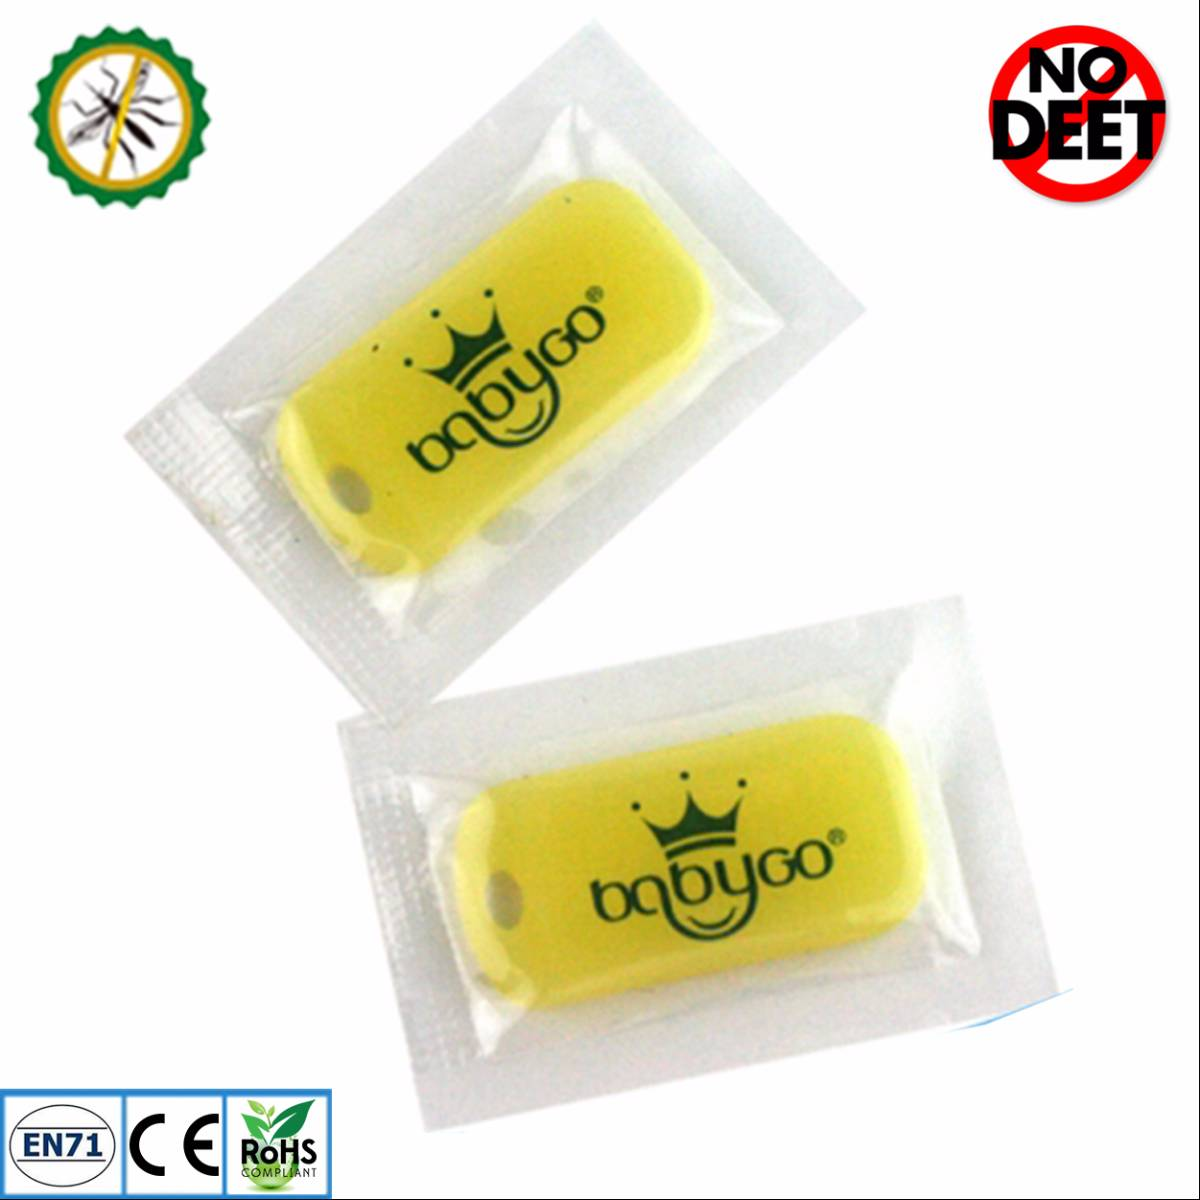 Babygo Refill Pellet Mosquito Repellent (isi Ulang Anti Nyamuk)1